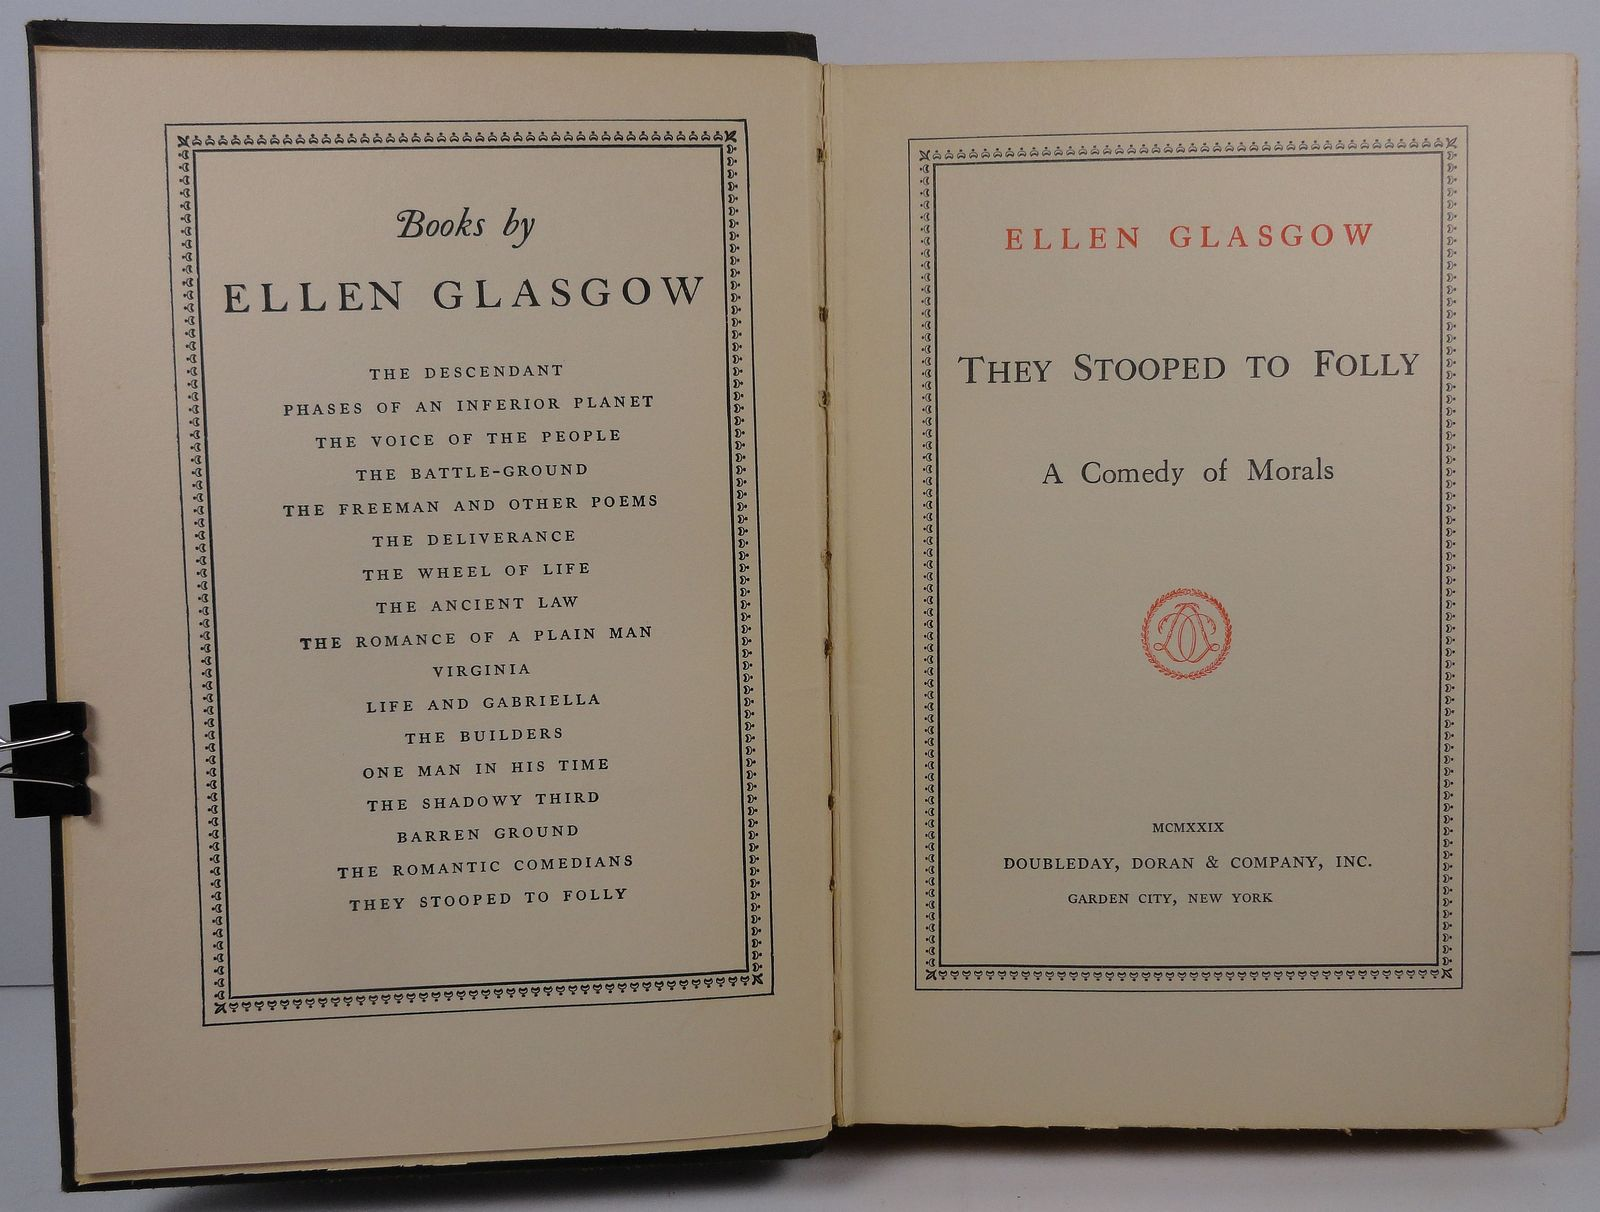 They Stooped to Folly A Comedy of Morals by Ellen Glasgow